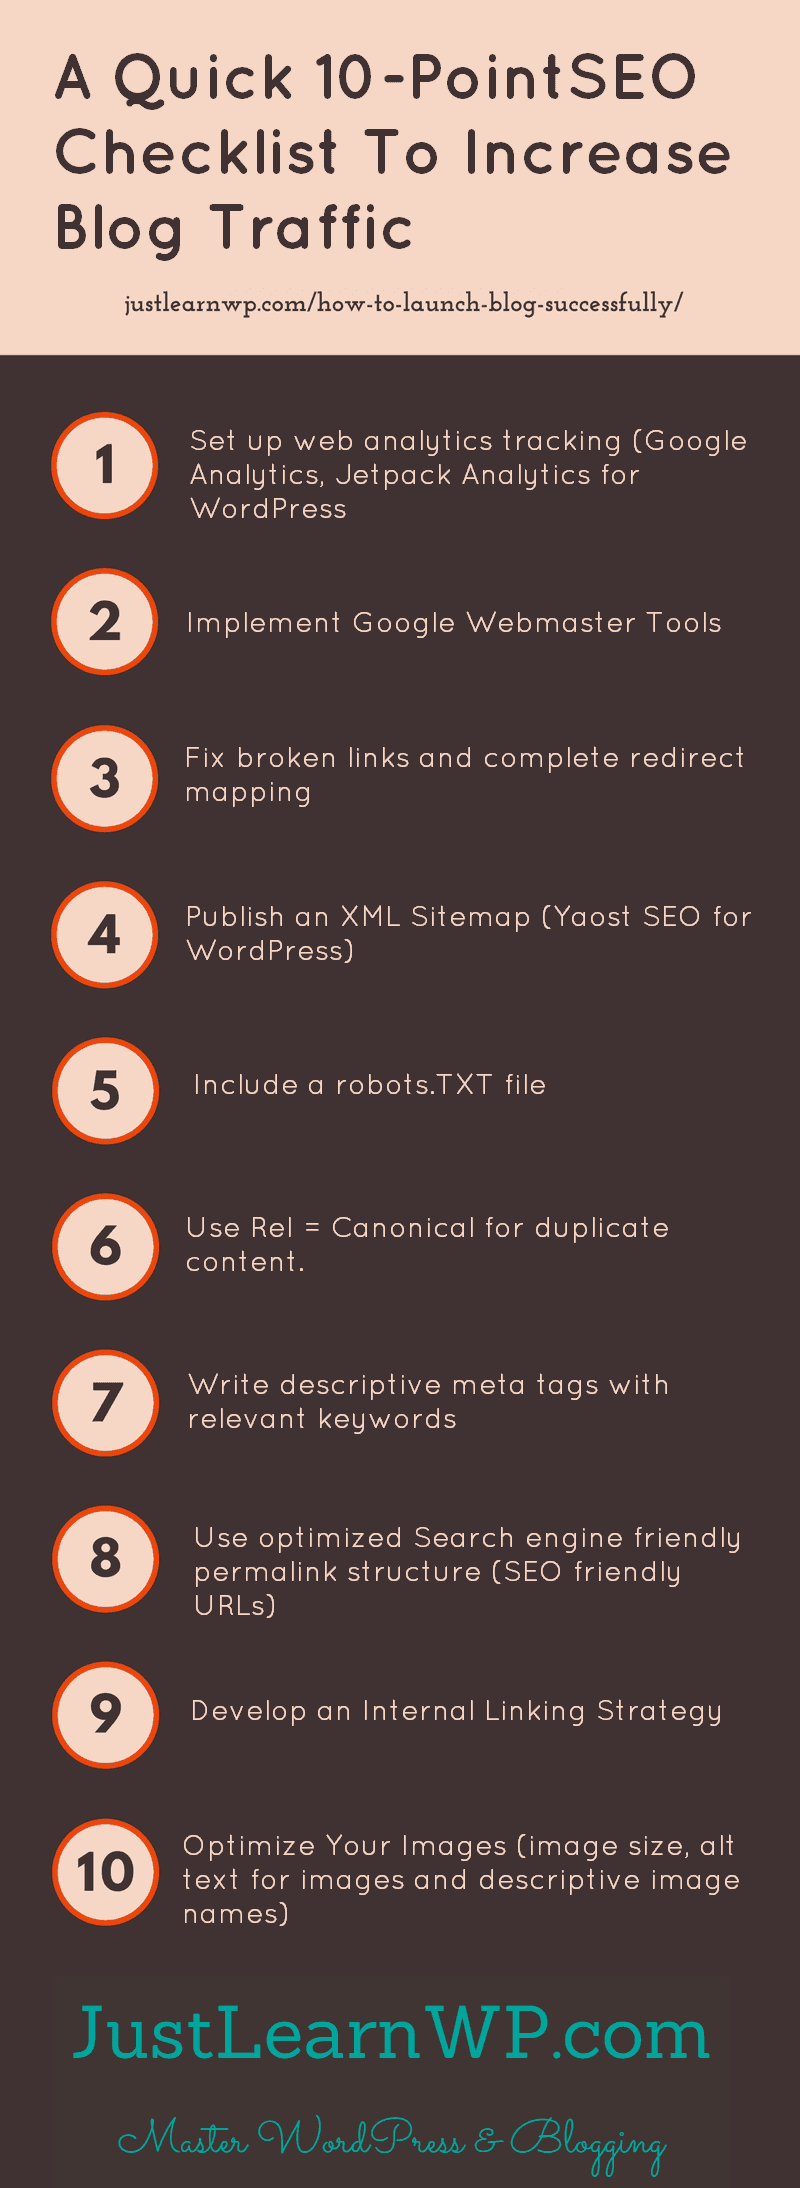 A Quick 10 Point SEO Checklist To Increase Blog Traffic